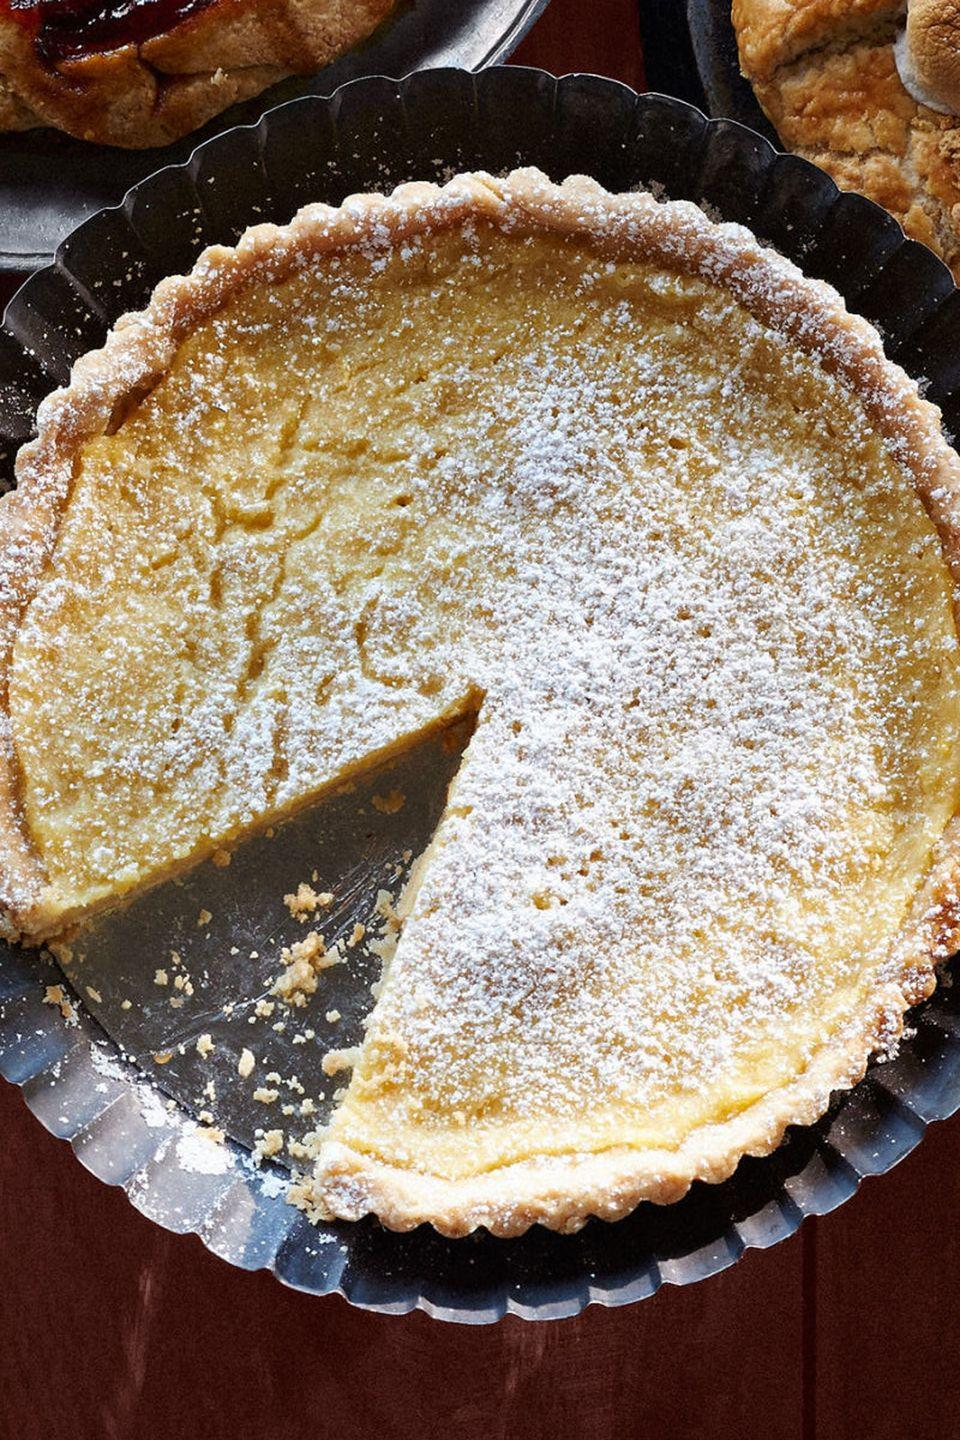 """<p>This lemon tart is an excellent alternative to typical Thanksgiving desserts.</p><p><strong><a href=""""https://www.countryliving.com/food-drinks/recipes/a36547/lemon-buttermilk-tart/"""" rel=""""nofollow noopener"""" target=""""_blank"""" data-ylk=""""slk:Get the recipe"""" class=""""link rapid-noclick-resp"""">Get the recipe</a>.</strong></p>"""